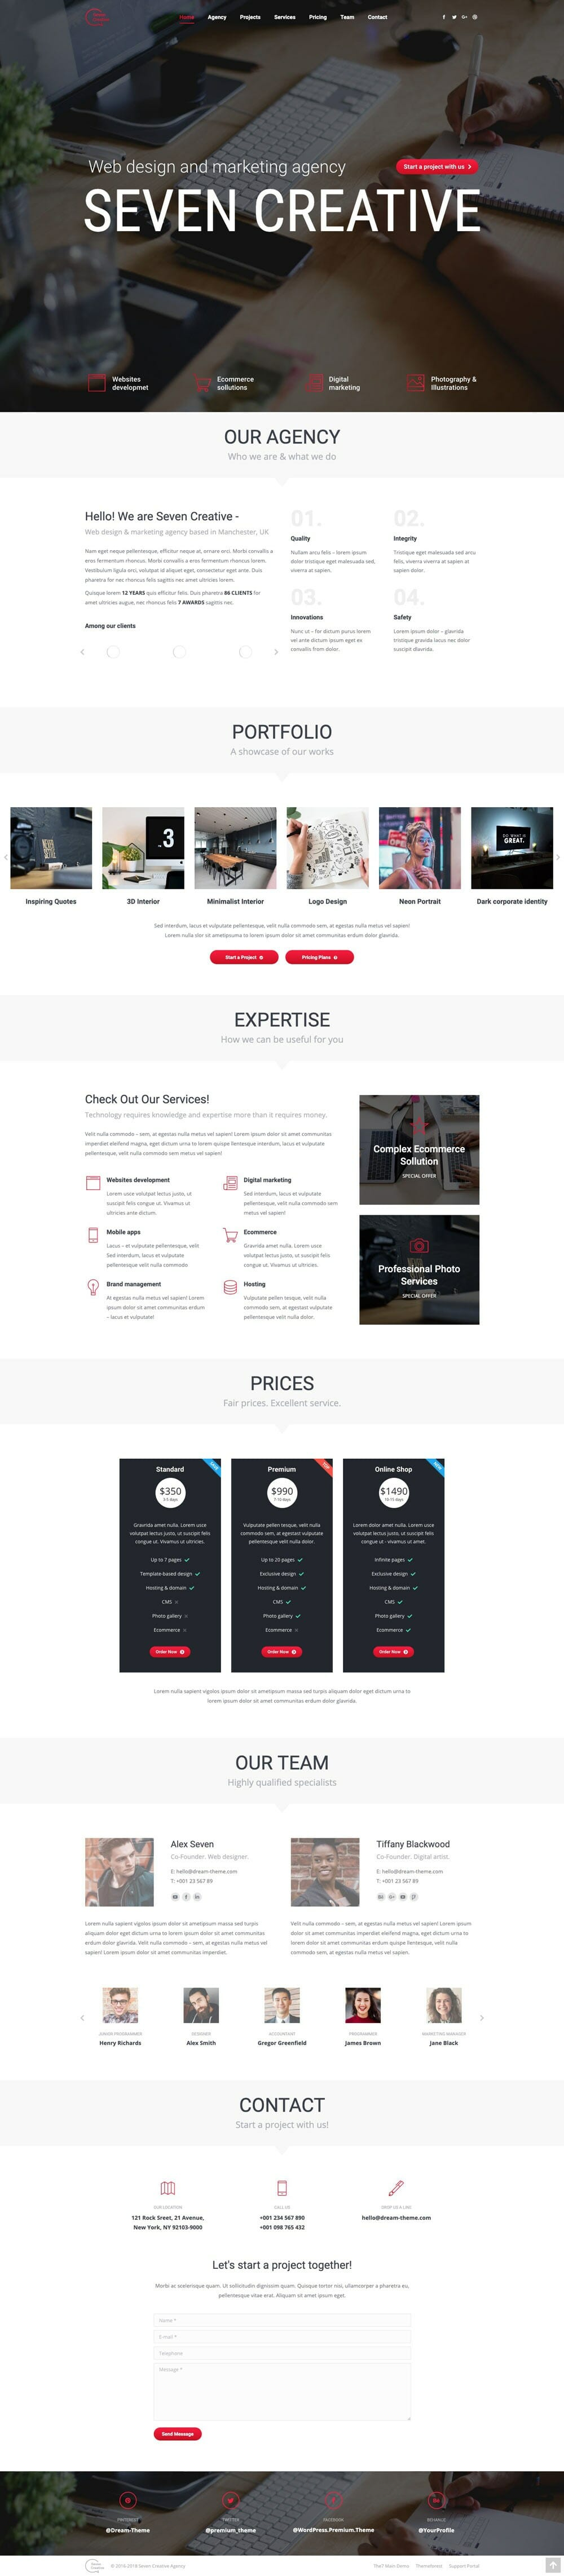 onepage-personal-template-sample-design2